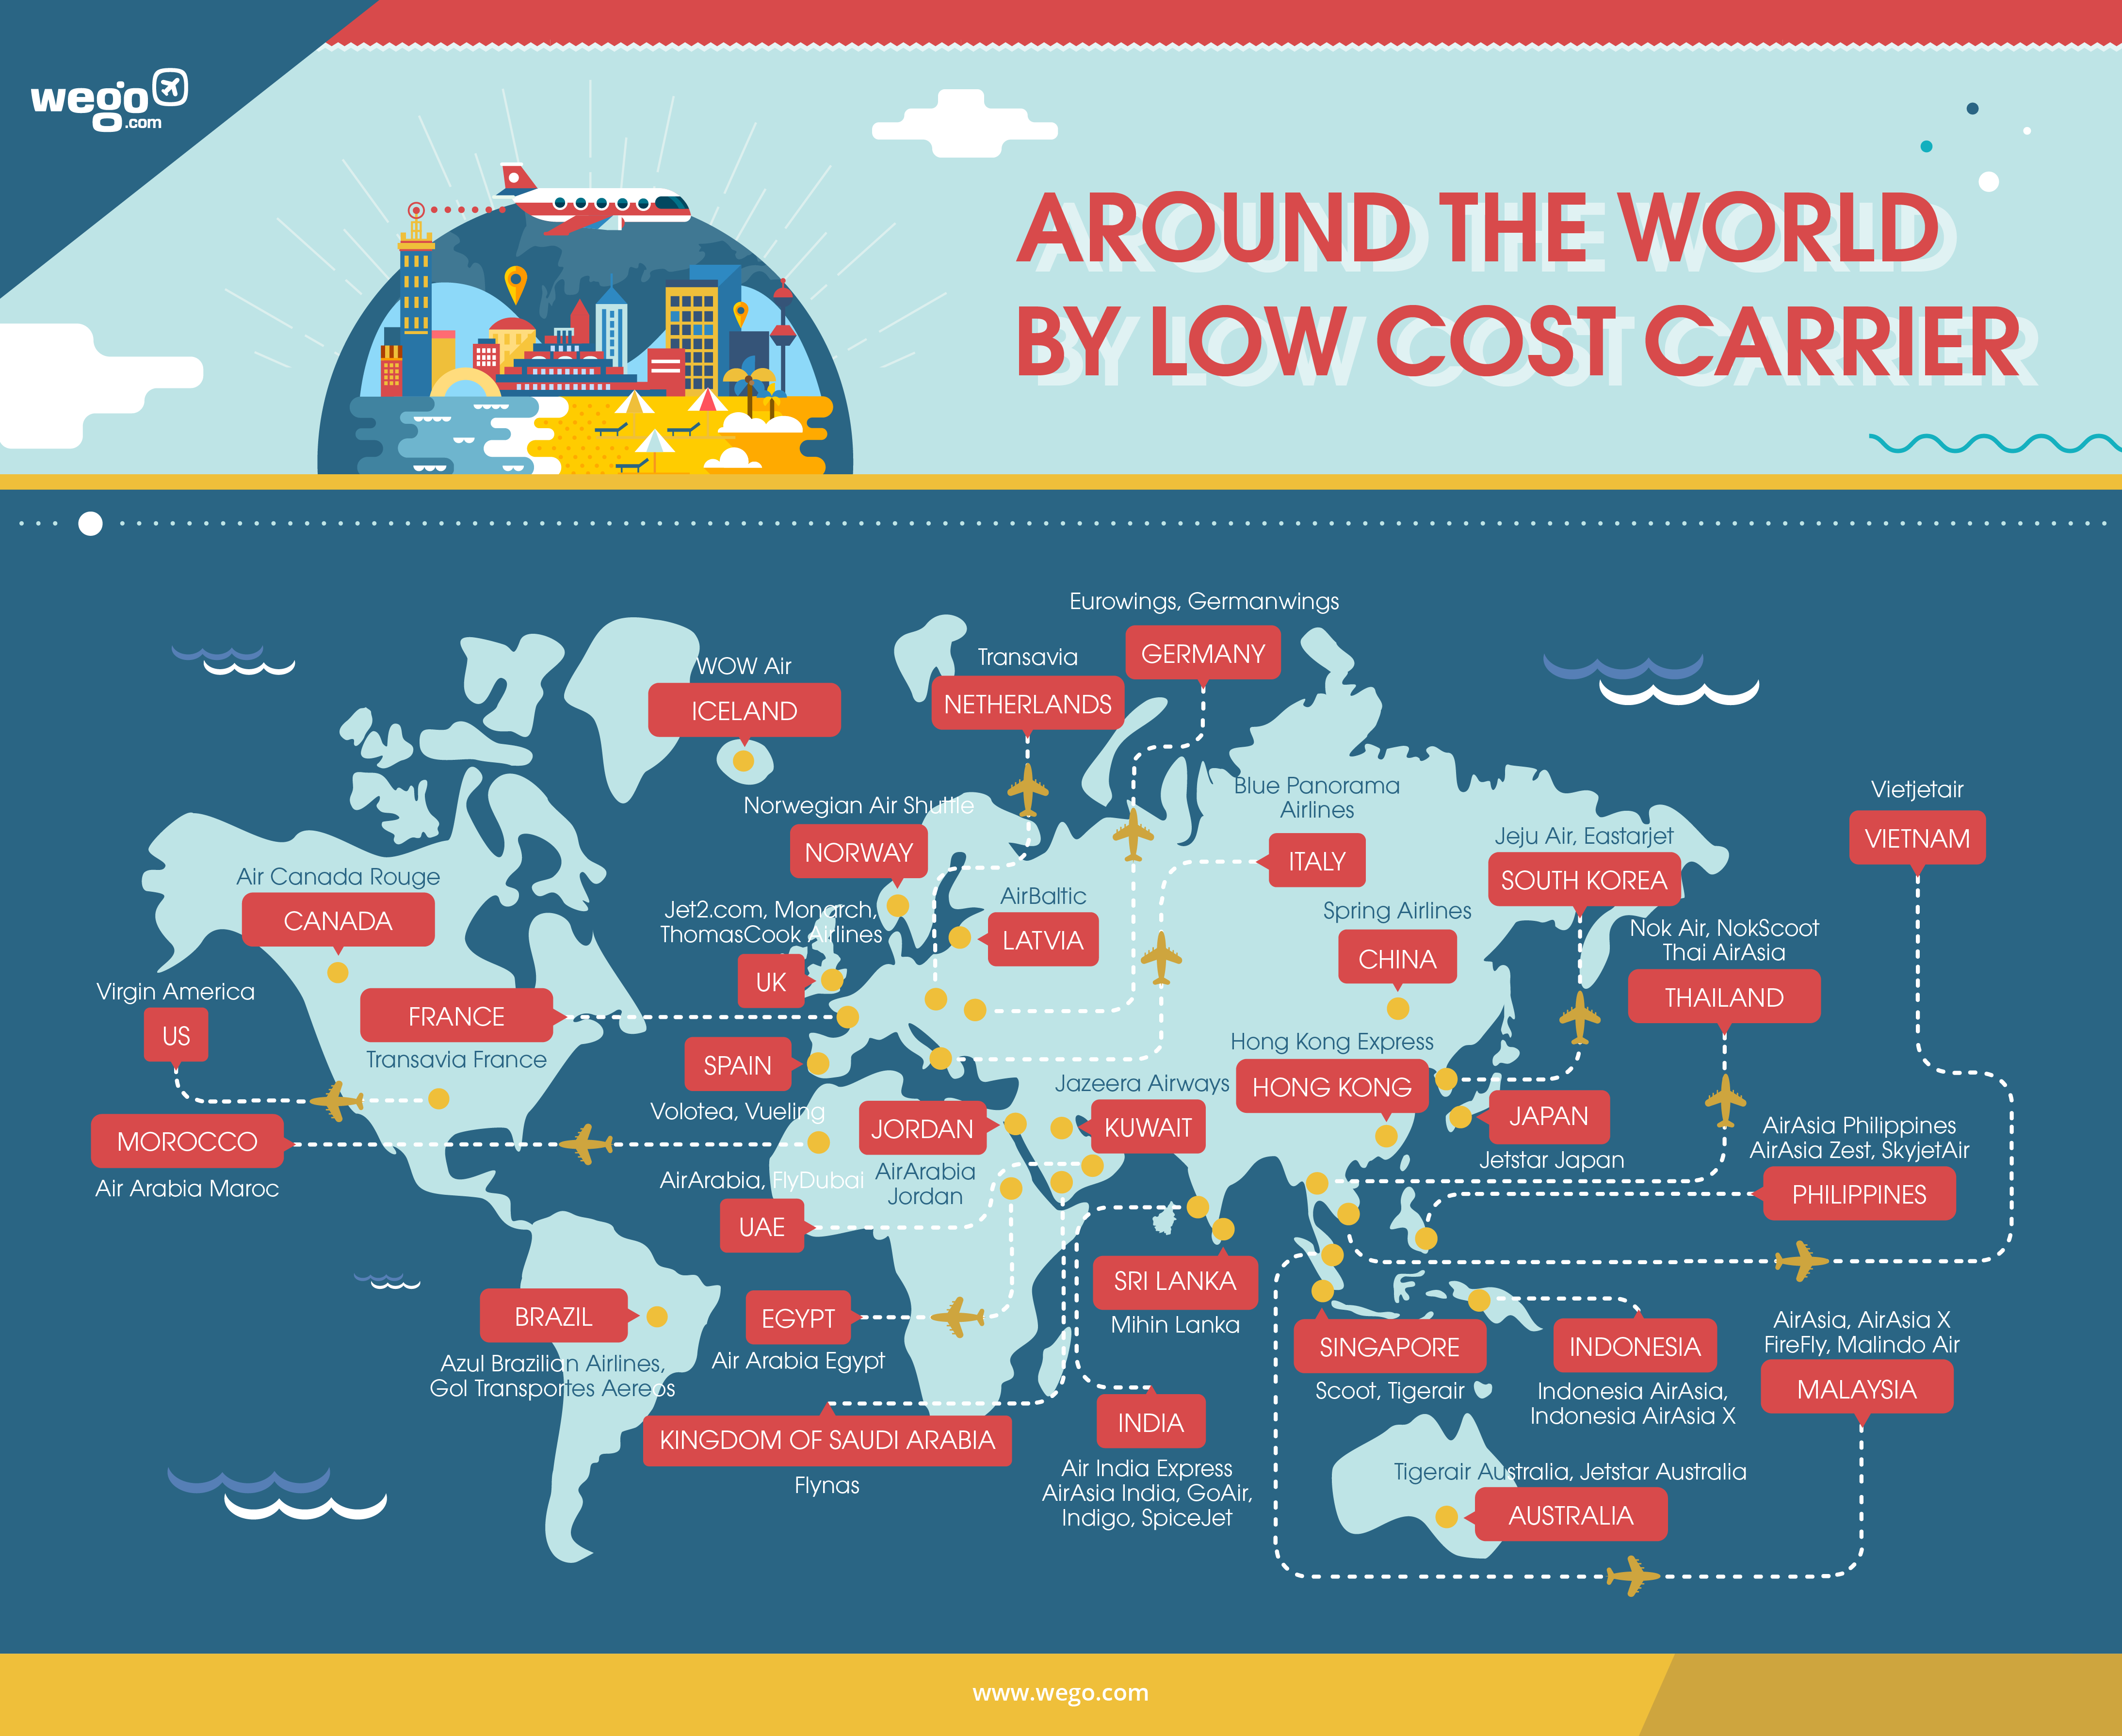 Wego offers special low-cost around-the-world travel plans